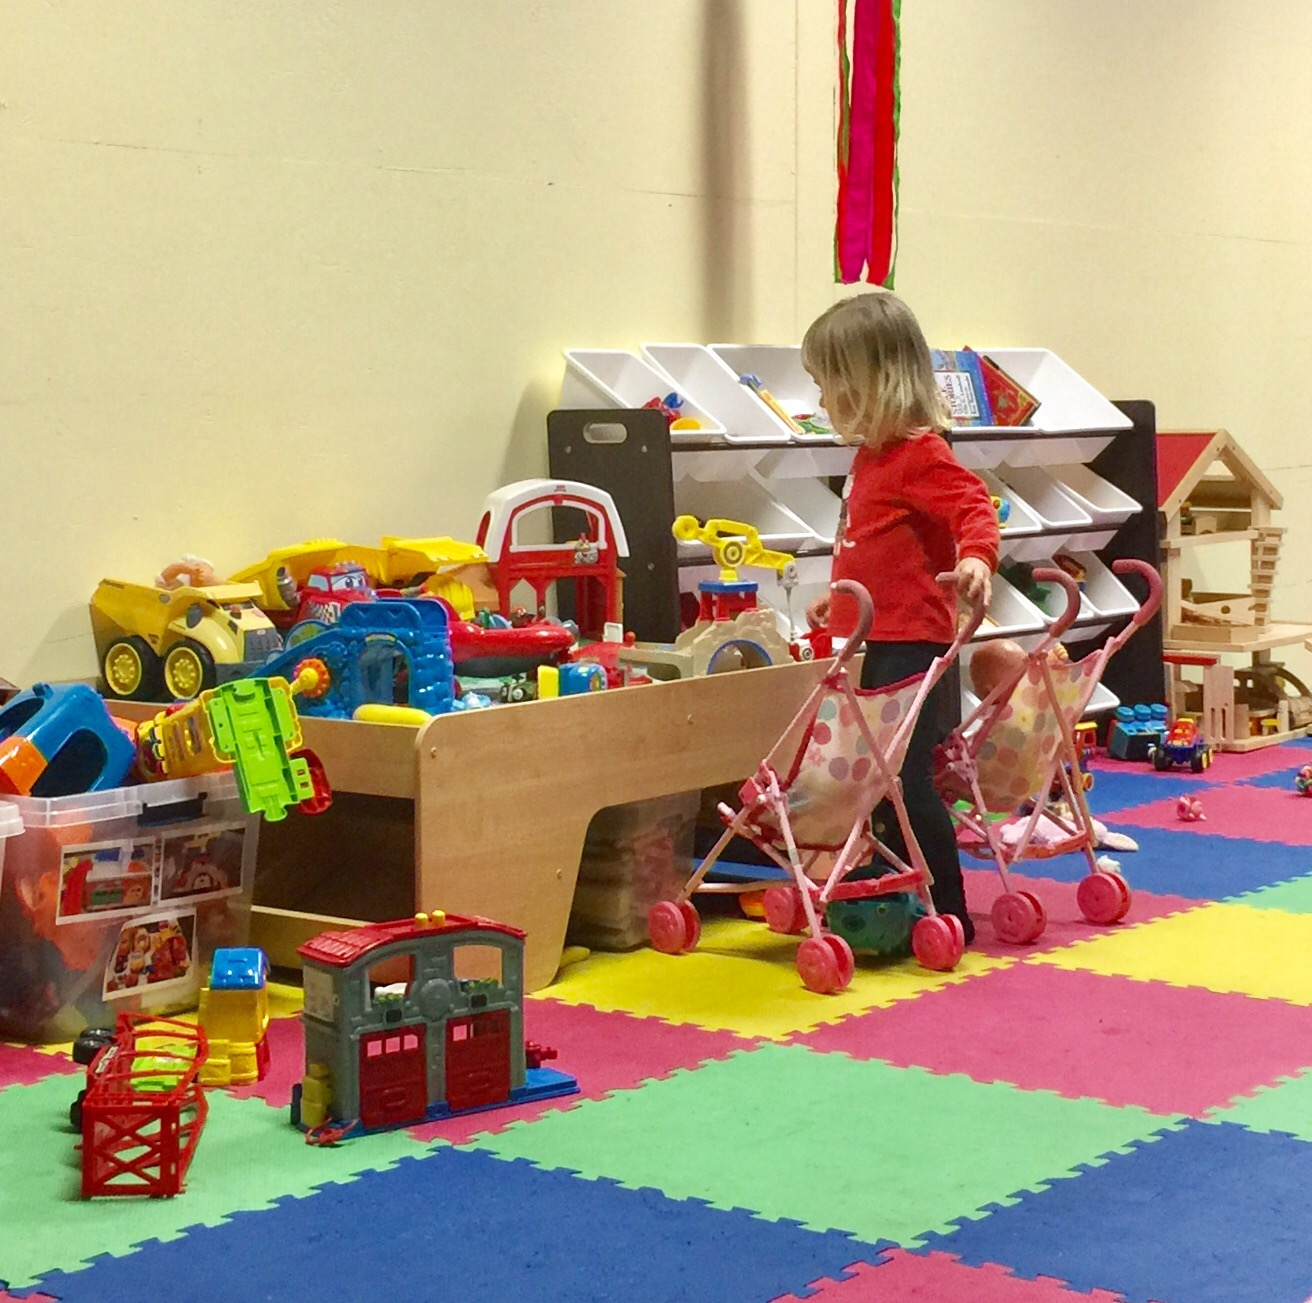 Toy Room at the Come Play space at Life Community Church in Paso Robles